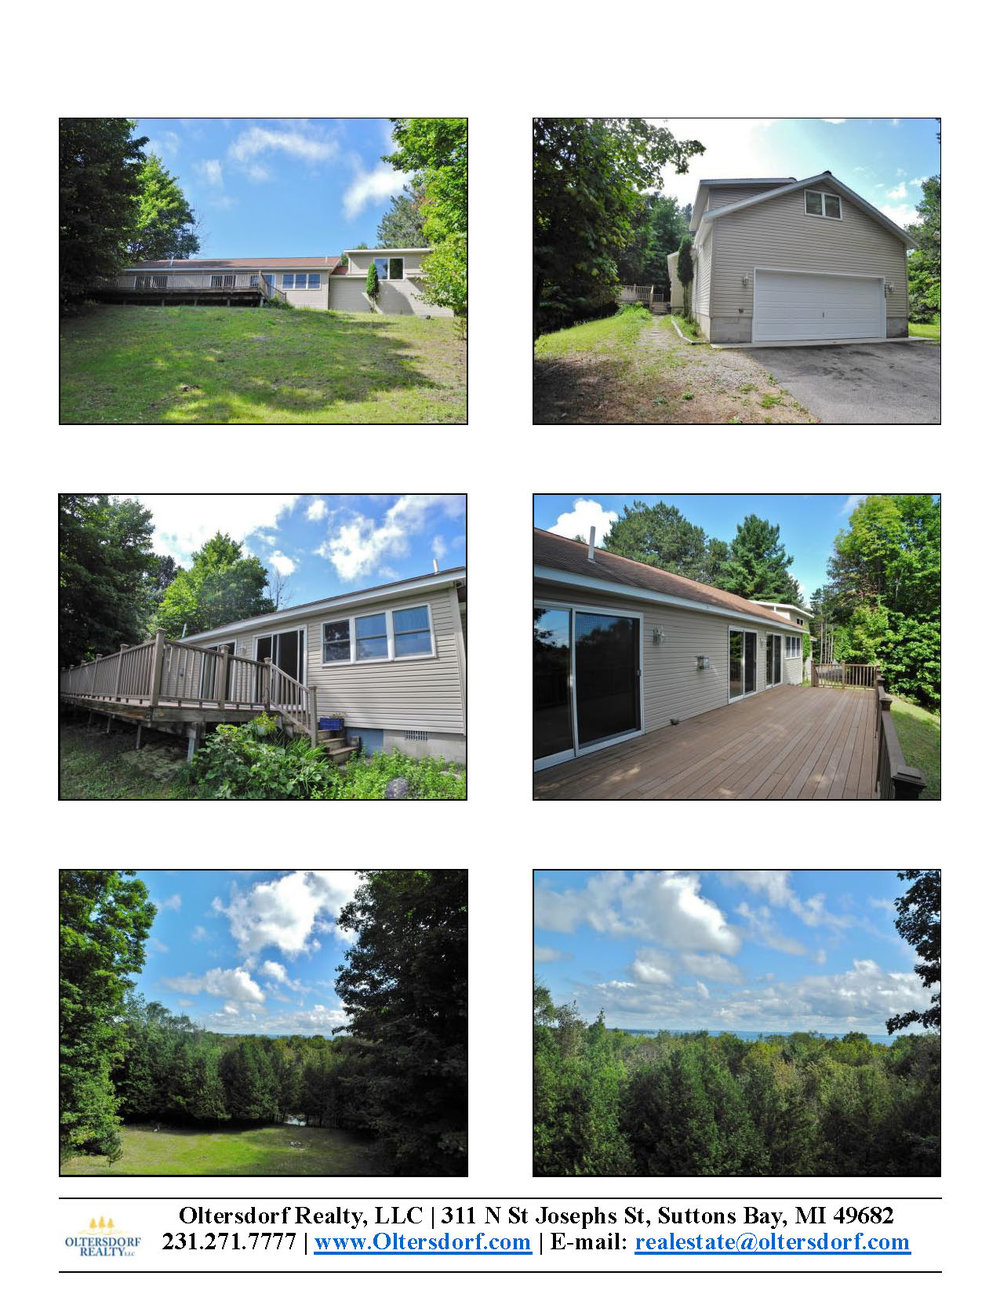 8888 NW Bay Shore Drive, Northport Marketing Packet - For Sale by Oltersdorf Realty LLC_Page_02.jpg